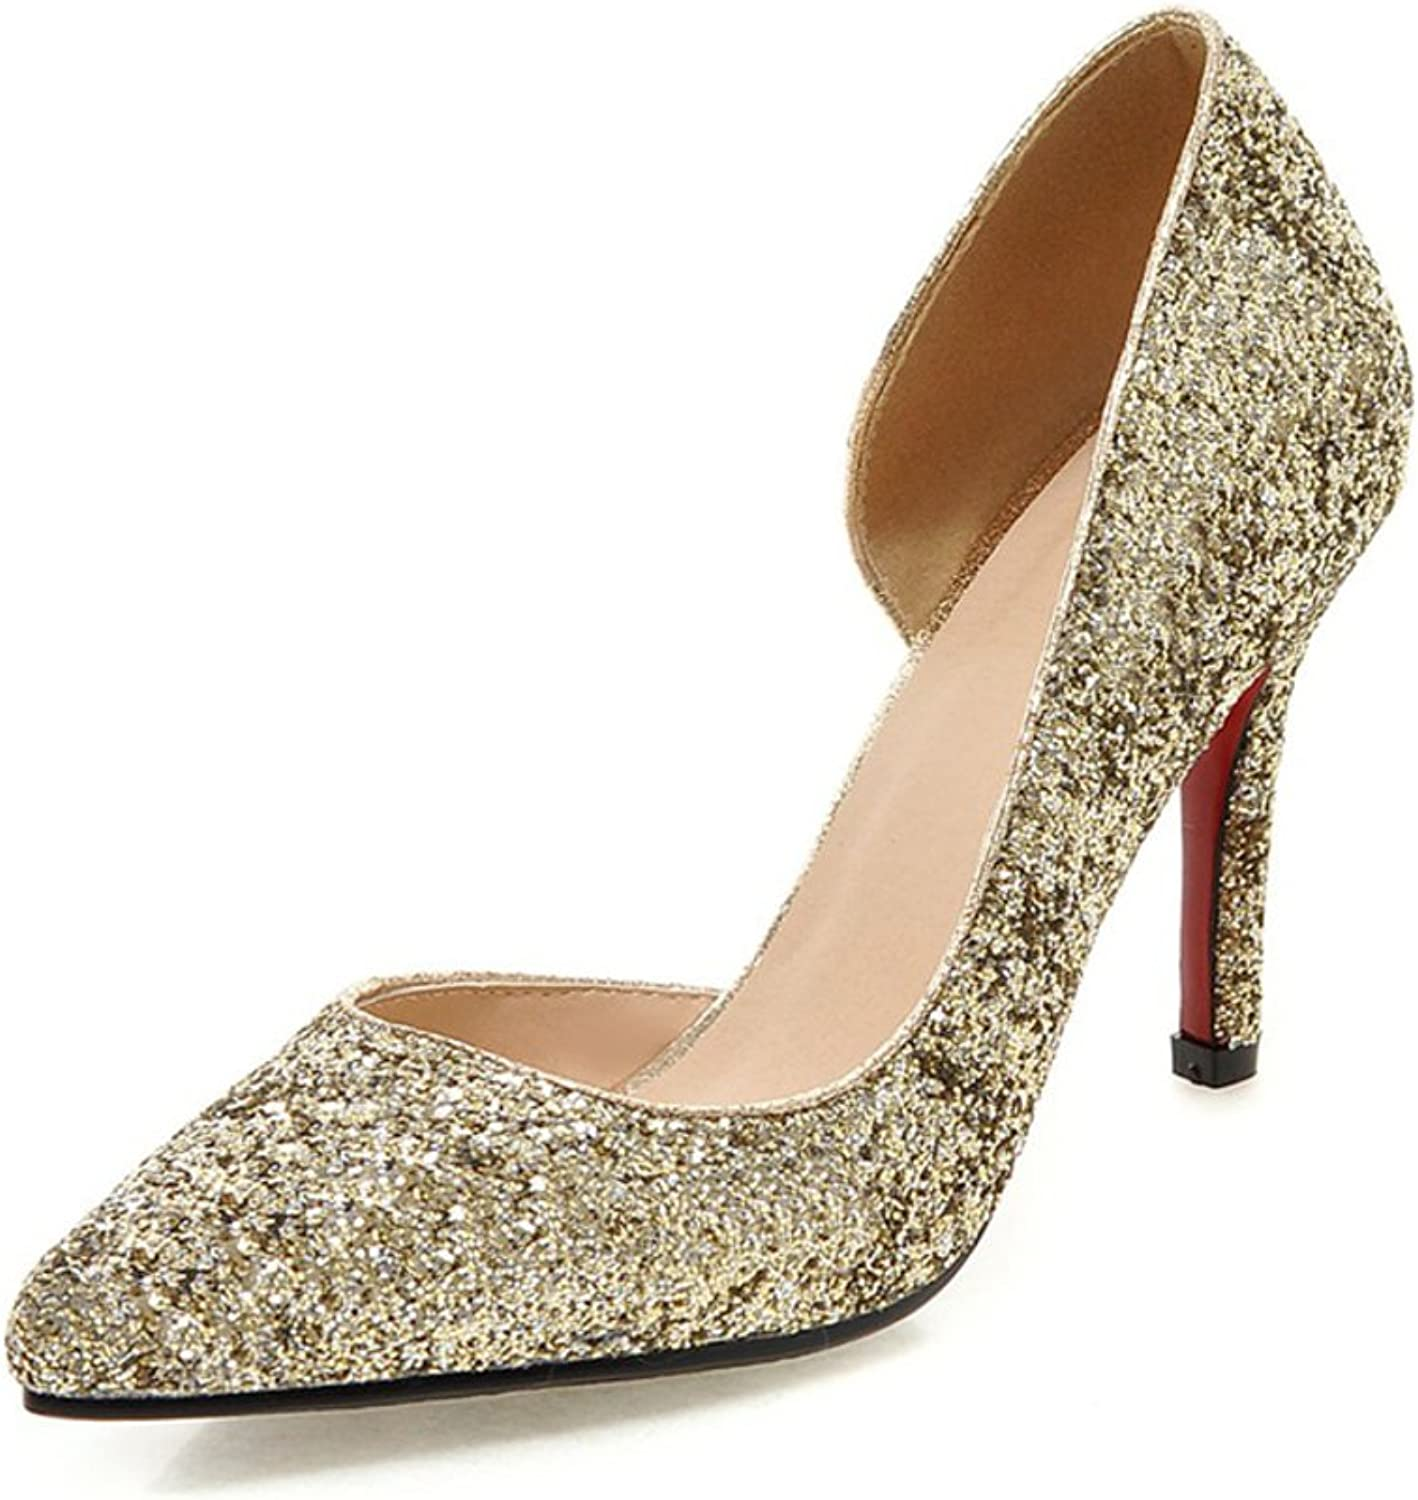 RHFDVGDS Fashion sequin wedding shoes Bridal shoes prong high heels the stiletto Club shoes